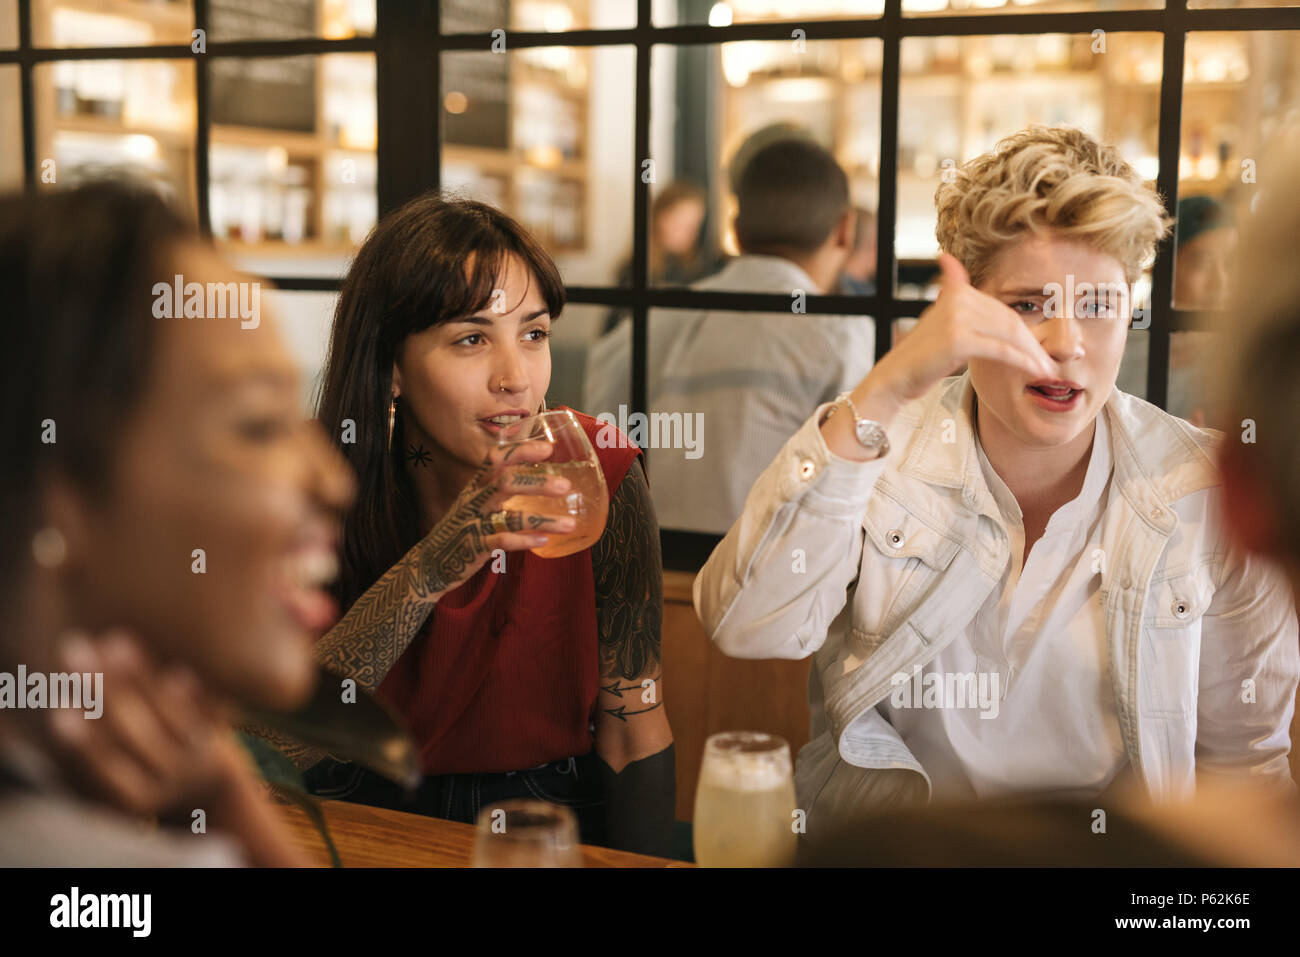 Diverse young girlfriends hanging out together in a trendy bistro - Stock Image